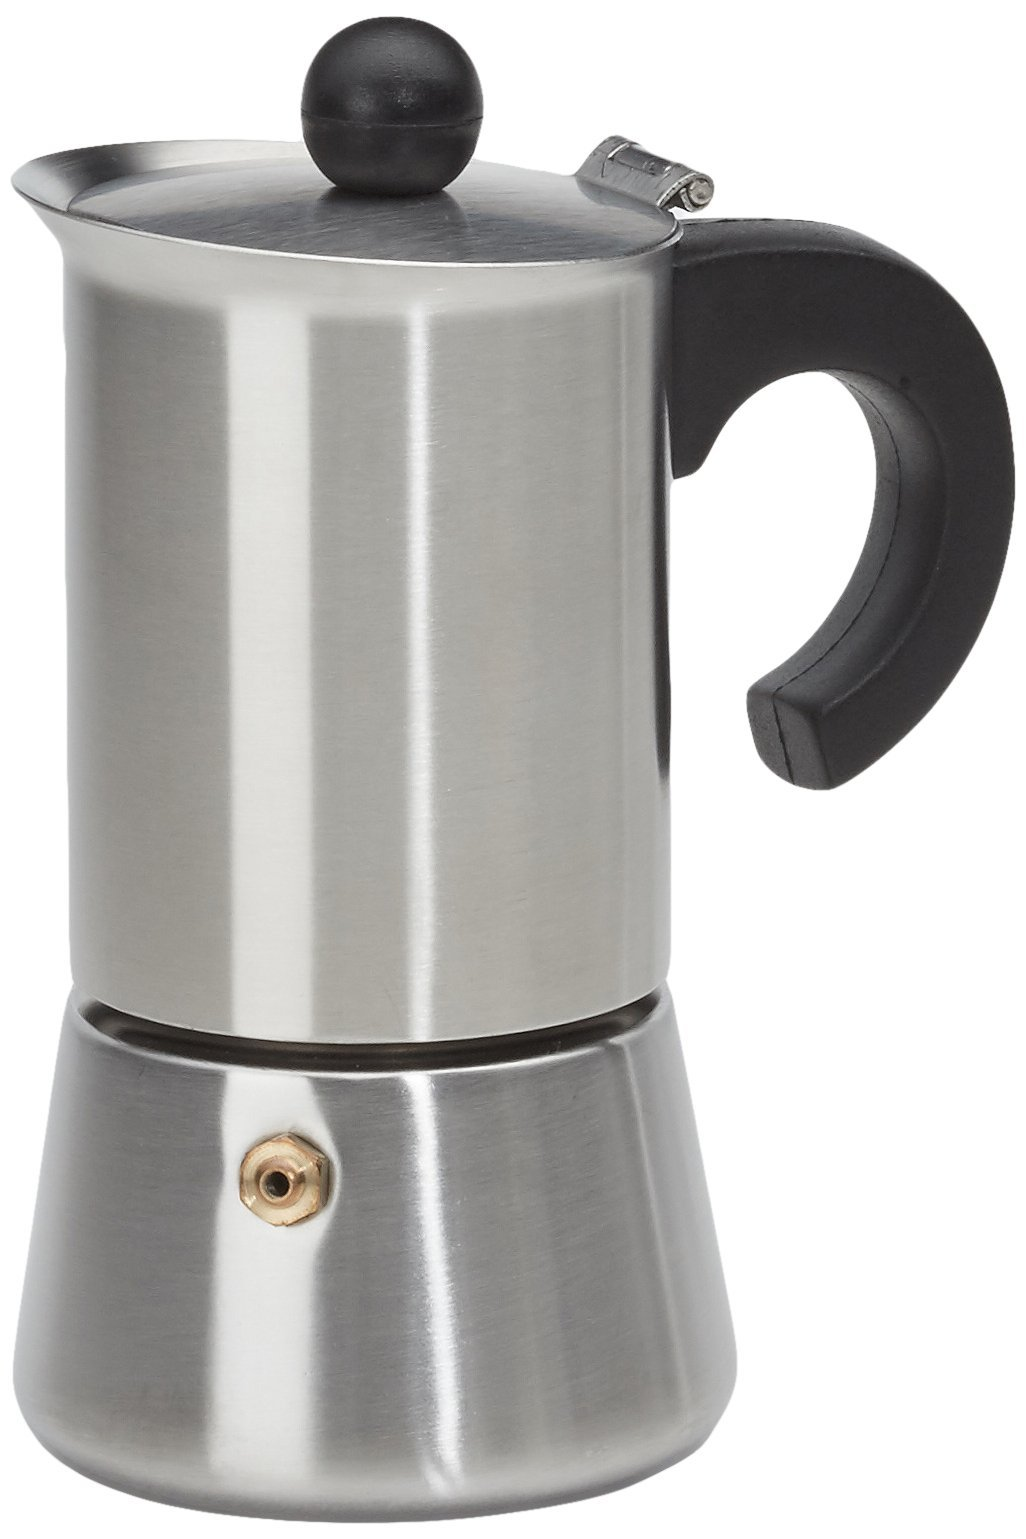 IBILI 611302 Espresso coffee maker